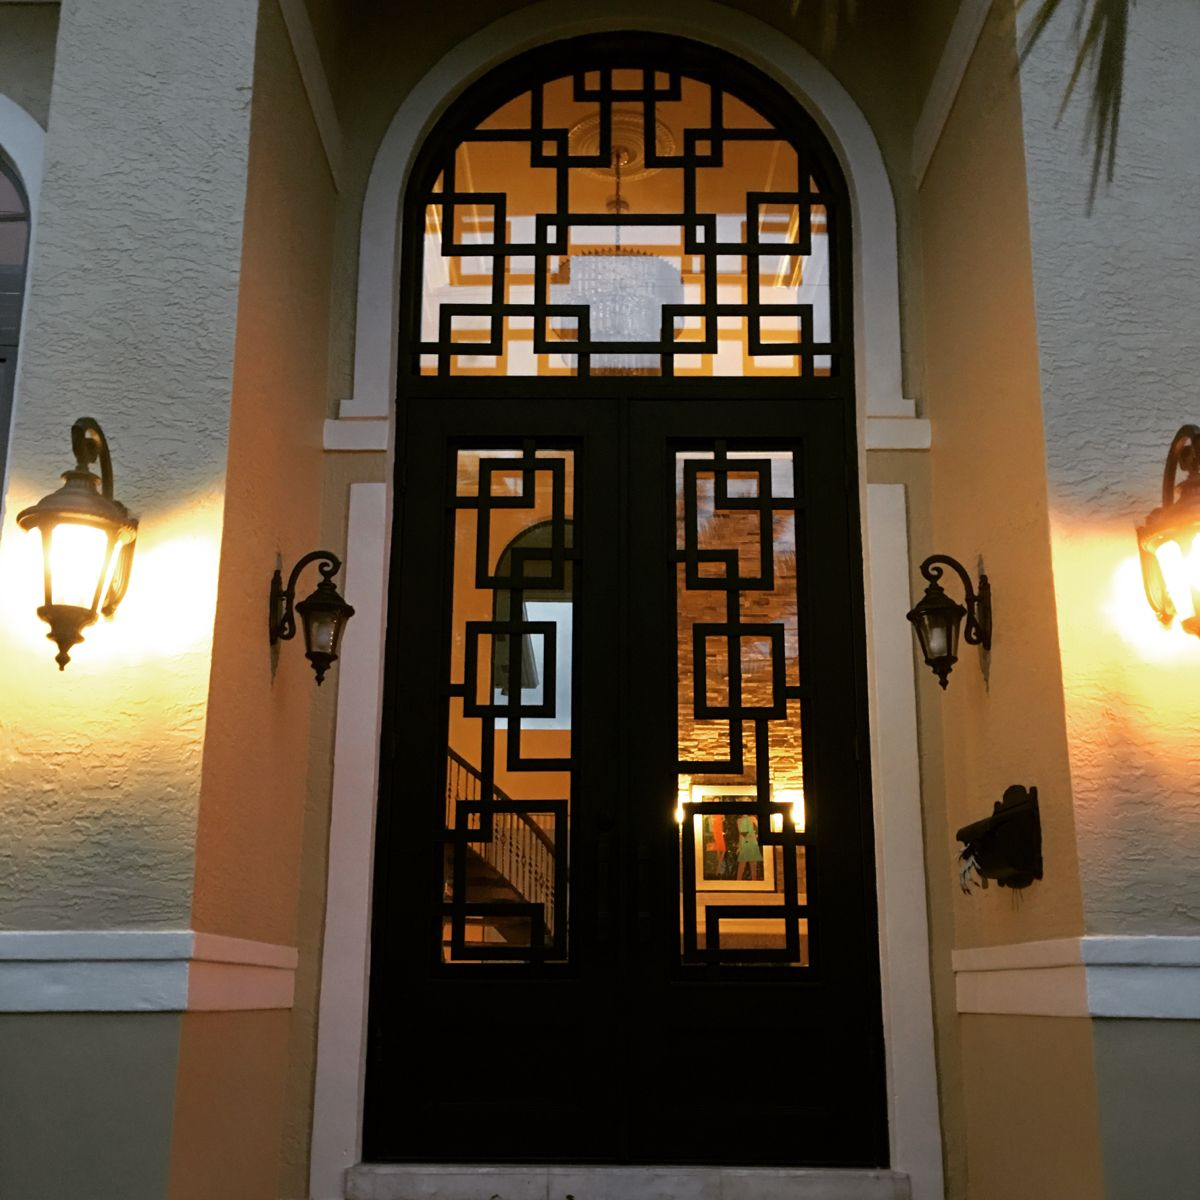 15ft Tall Wrought Iron Door And Transom In 2020 Wrought Iron Doors Iron Doors Beautiful Doors